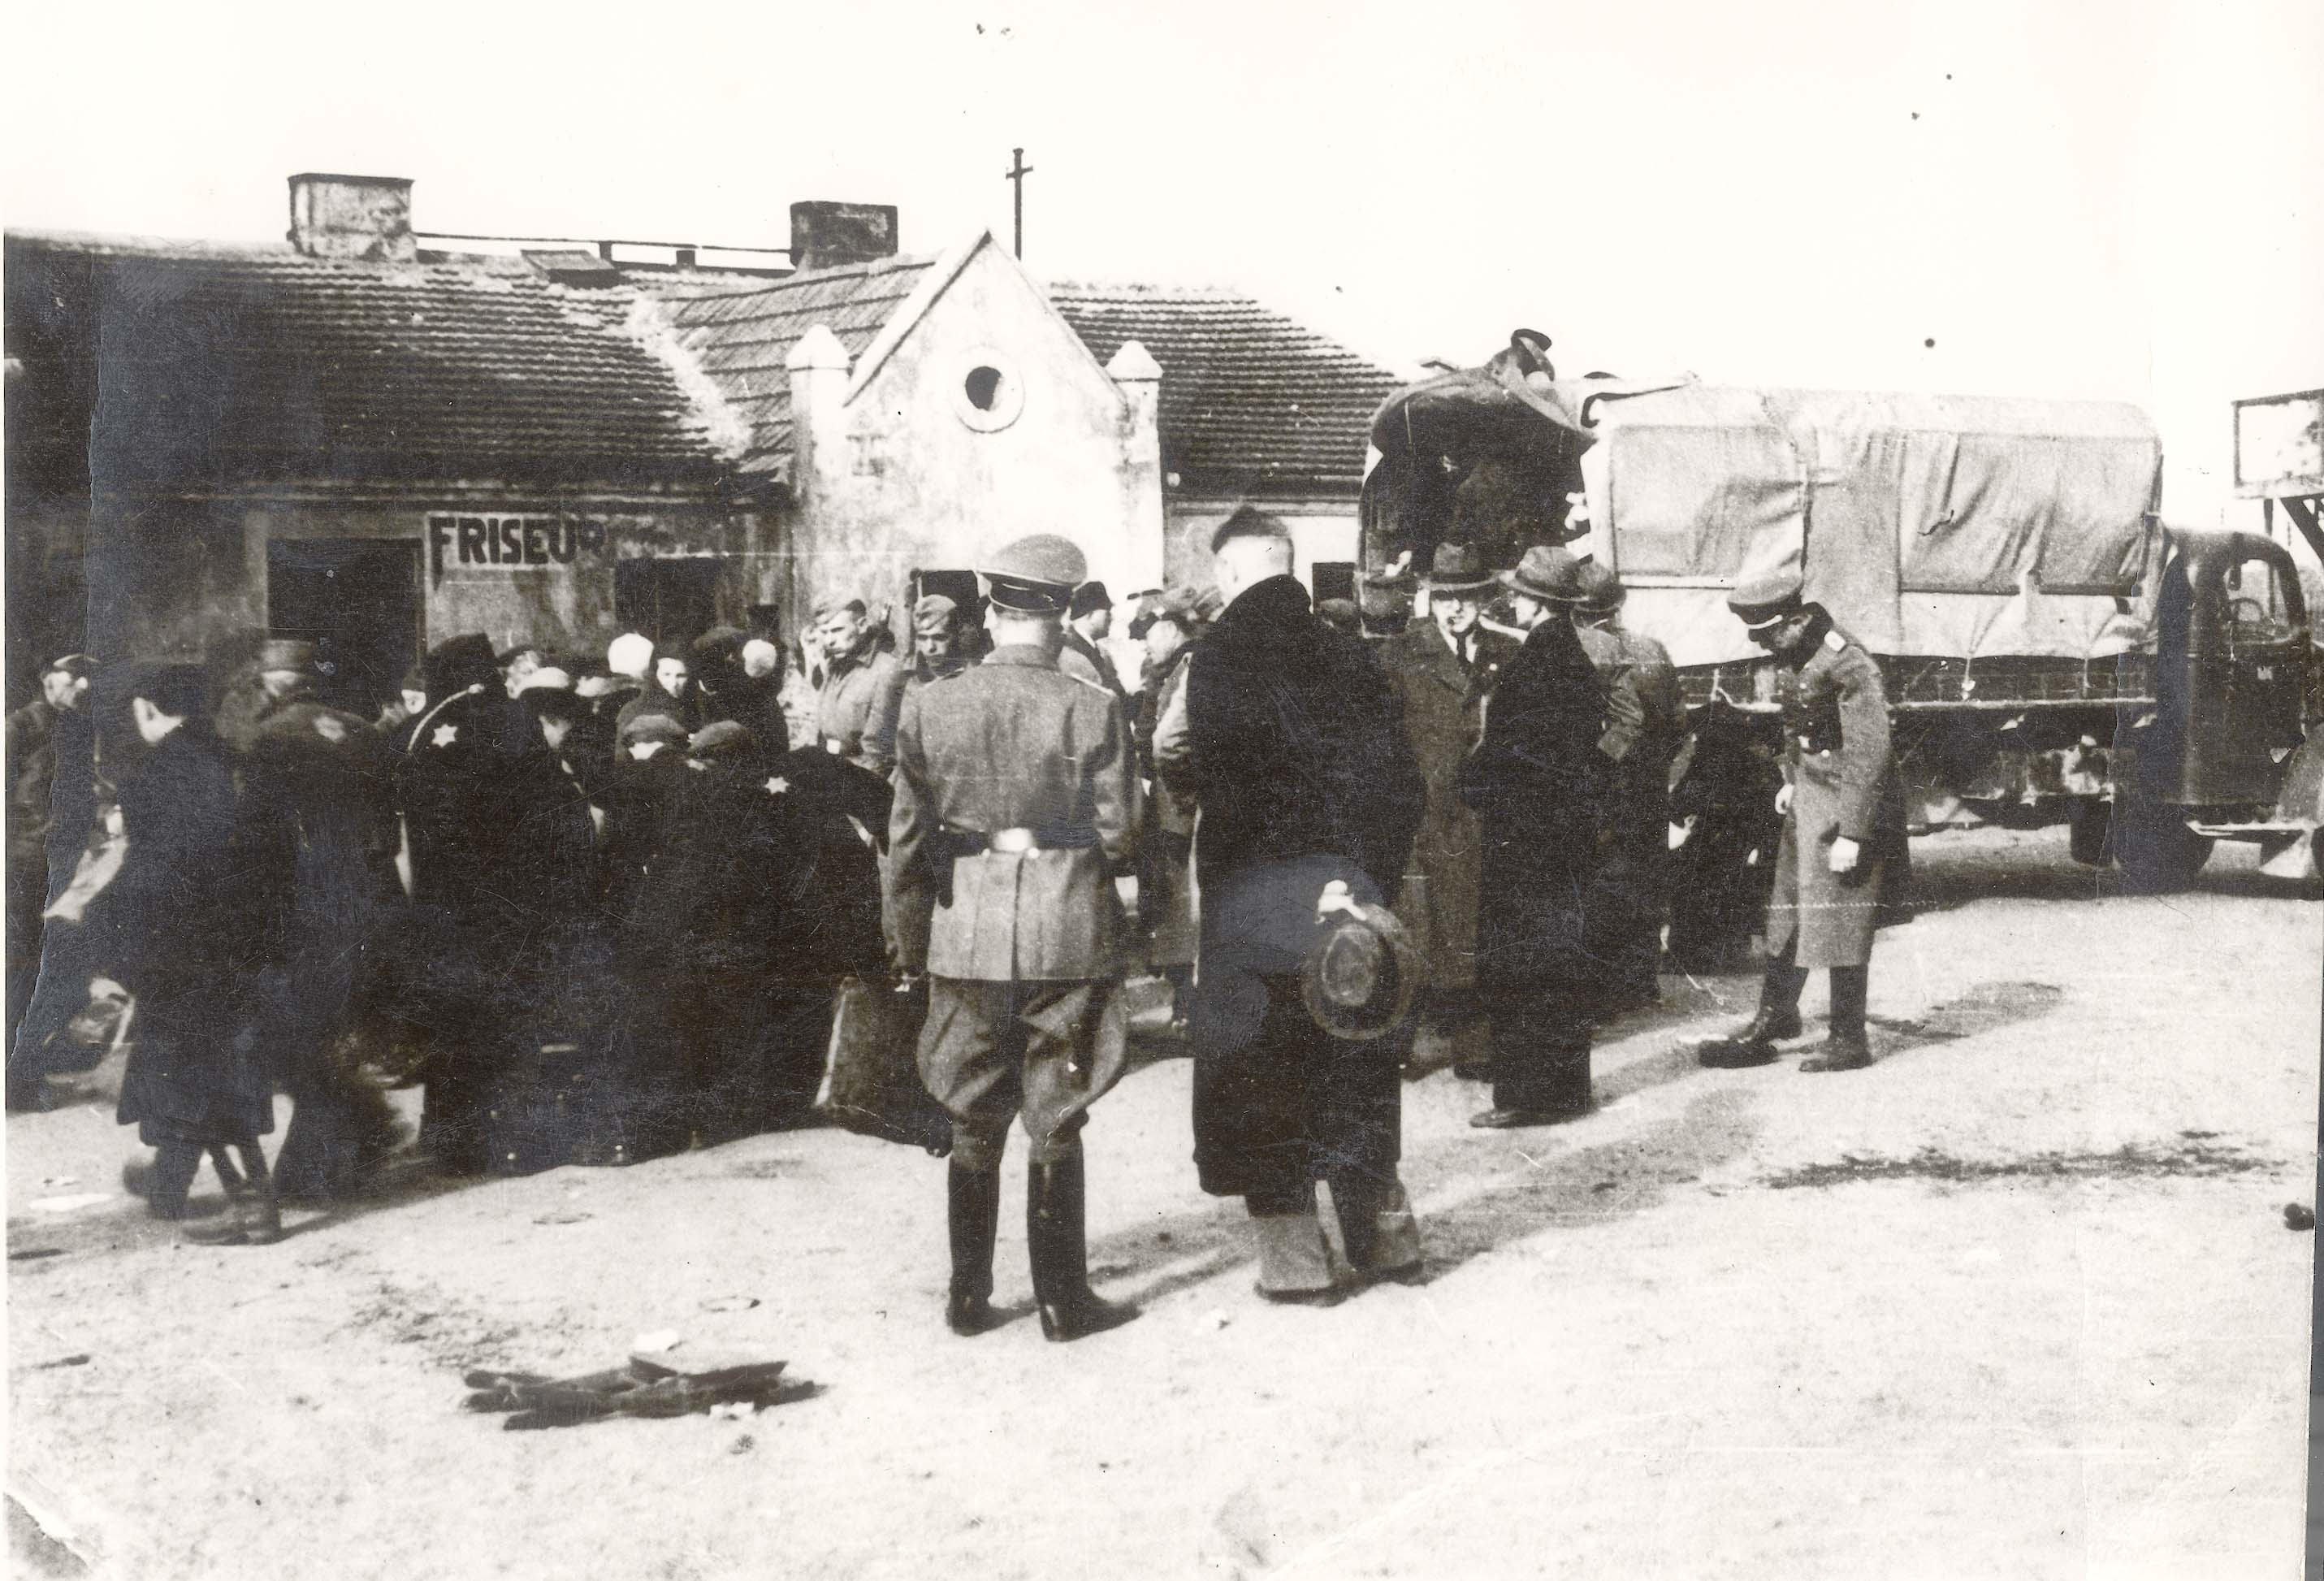 Deportation of Jews from Wloclawek, Poland to the Chelmno Death Camp, April 1942.